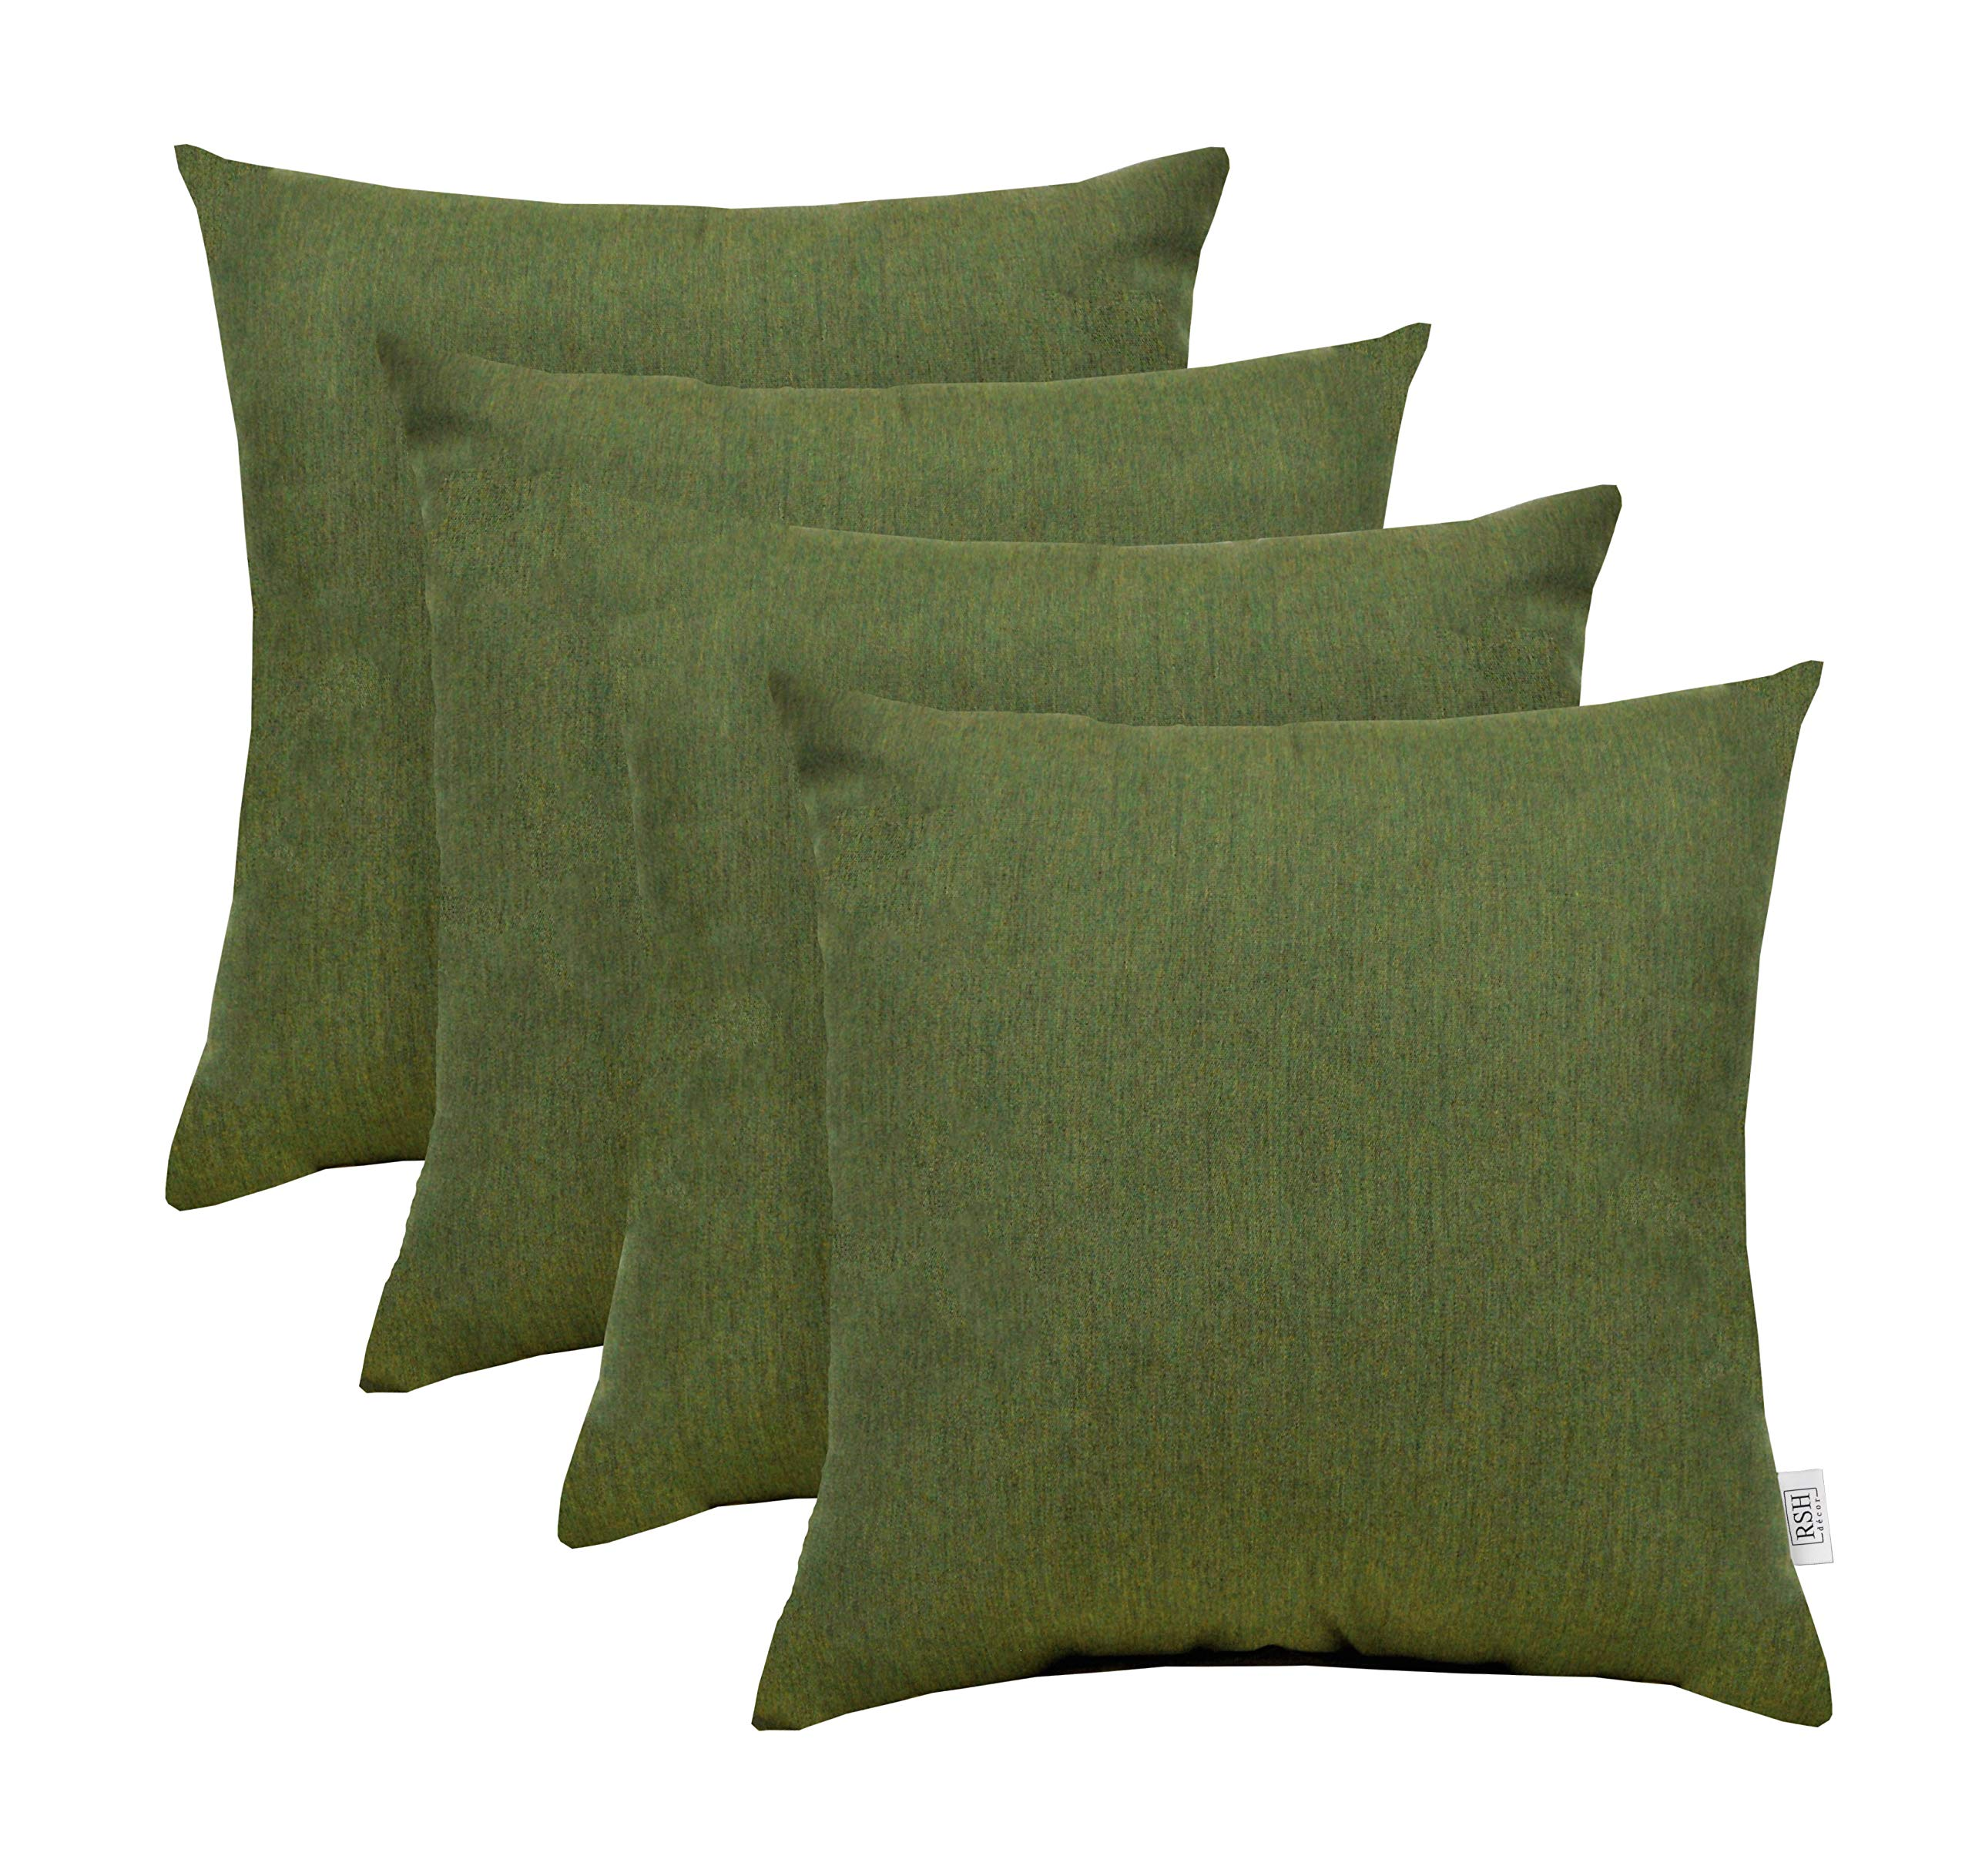 RSH Décor Set of 4 Indoor/Outdoor Square Throw Pillows made of Sunbrella Canvas Fern Green (20'' x 20'')